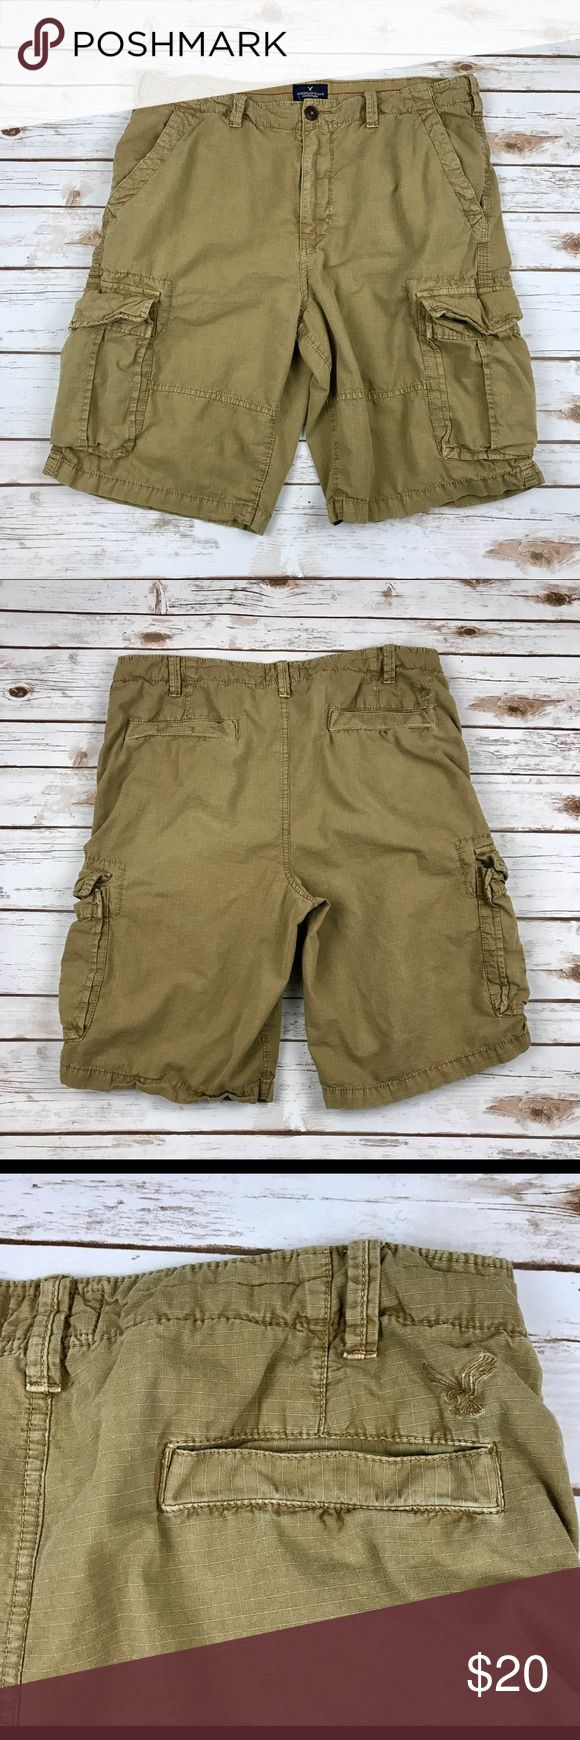 """American Eagle Longboard Cargo ShortsMen's Sz 38 American Eagle """"Longboard"""" Cargo Shorts  Men's Size 38  Khaki/Tan/Coyote 6 Pocket Casual style Materials: 100% cotton Gently pre-owned. Light signs of wear.   Actual measurements taken laying flat: waist- 19"""" rise- 13.5"""" inseam- 11"""" leg opening- 12""""   Location- B16 American Eagle Outfitters Shorts Cargo"""